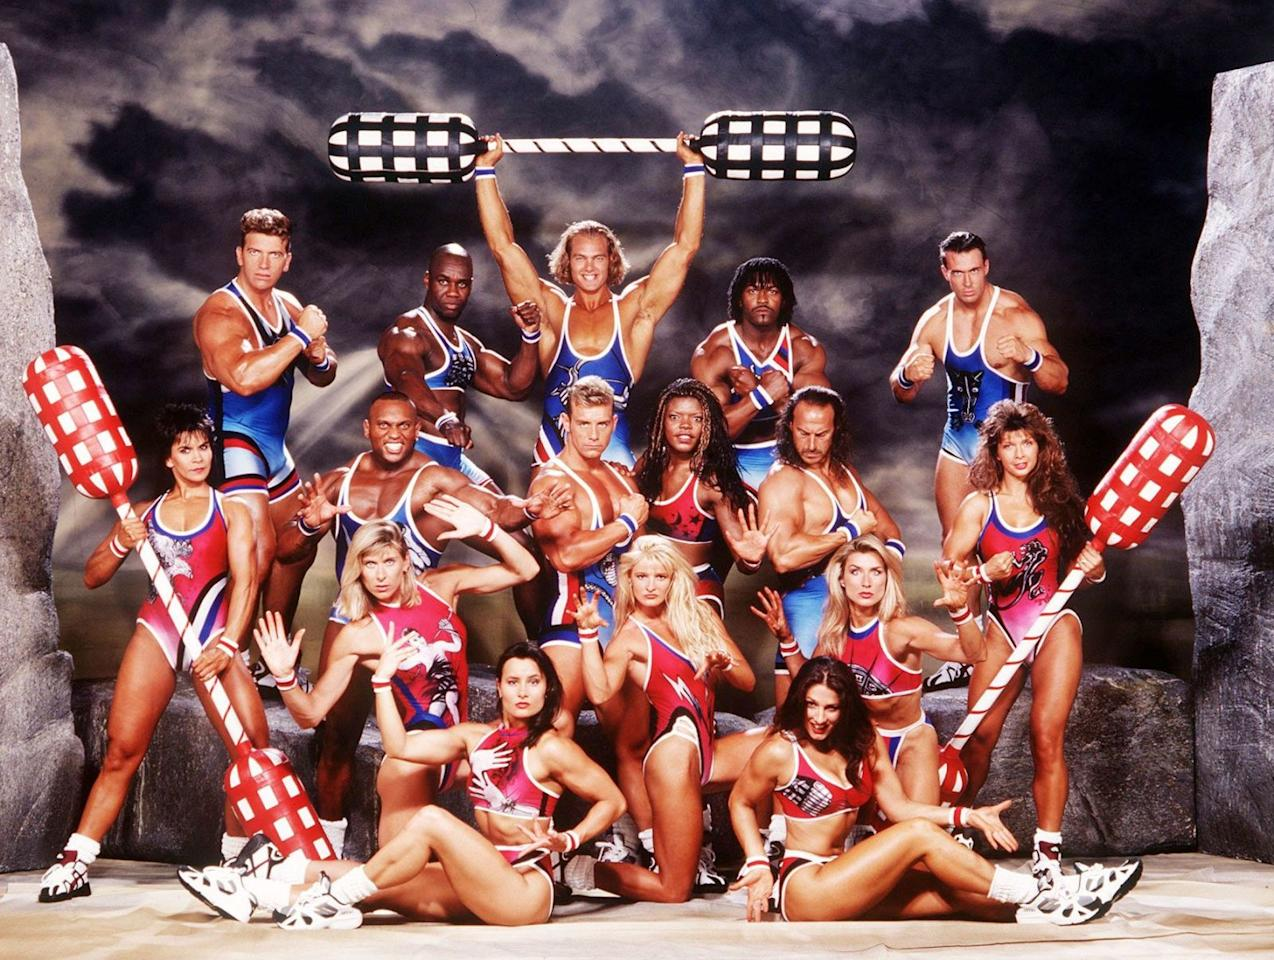 <p>They were seemingly superhuman powerhouses, forces to be reckoned with – and only occasionally tamed by strict referee John Anderson. Originally hosted by John Fashanu and Ulrika Jonsson, <em>Gladiators</em> was what Saturday nights in the '90s were made for. But where are those man- and woman-mountains now?<span></span></p>